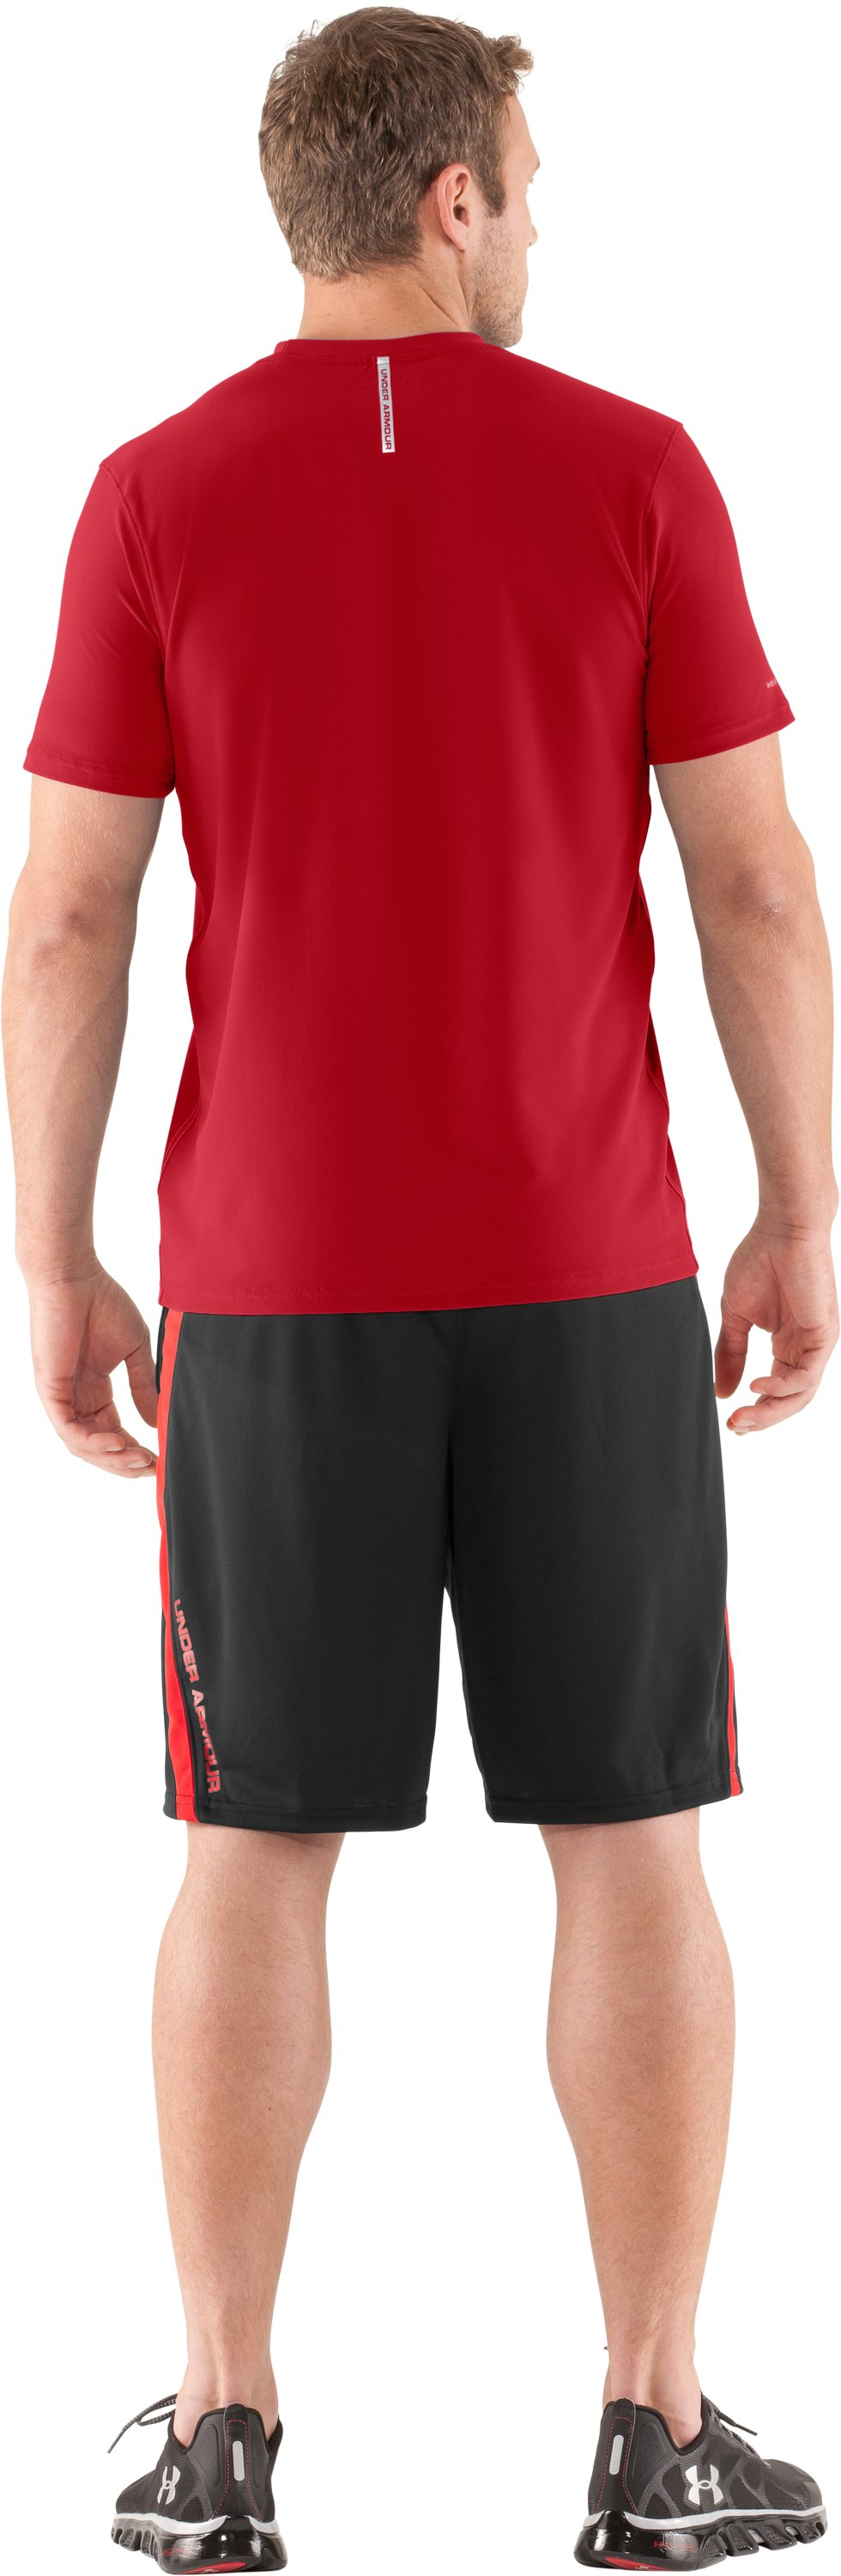 Men's coldblack® Short Sleeve T-Shirt, Red, Back